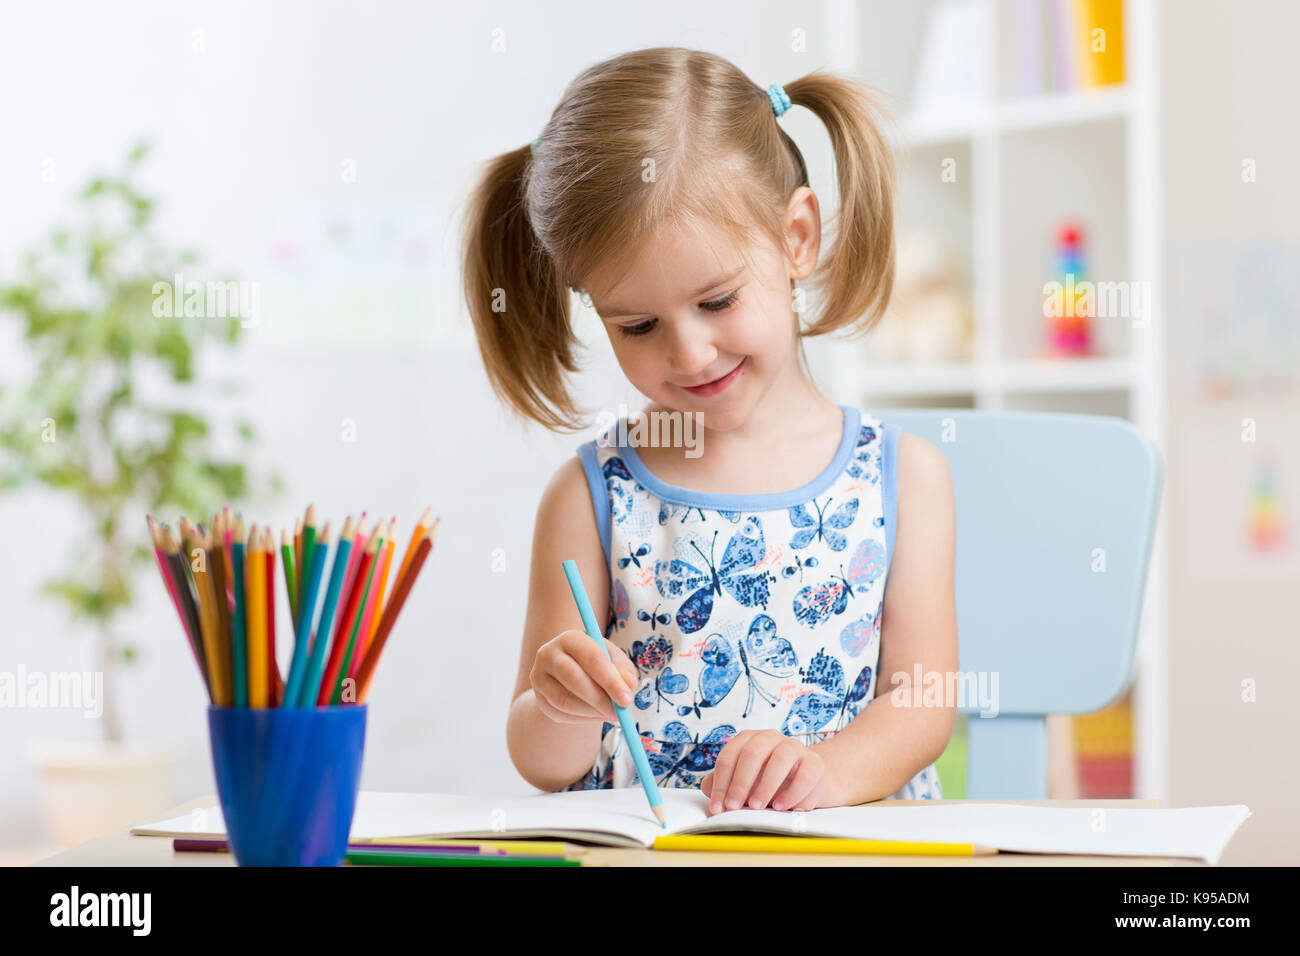 Child girl drawing with colorful pencils in nursery - Stock Image